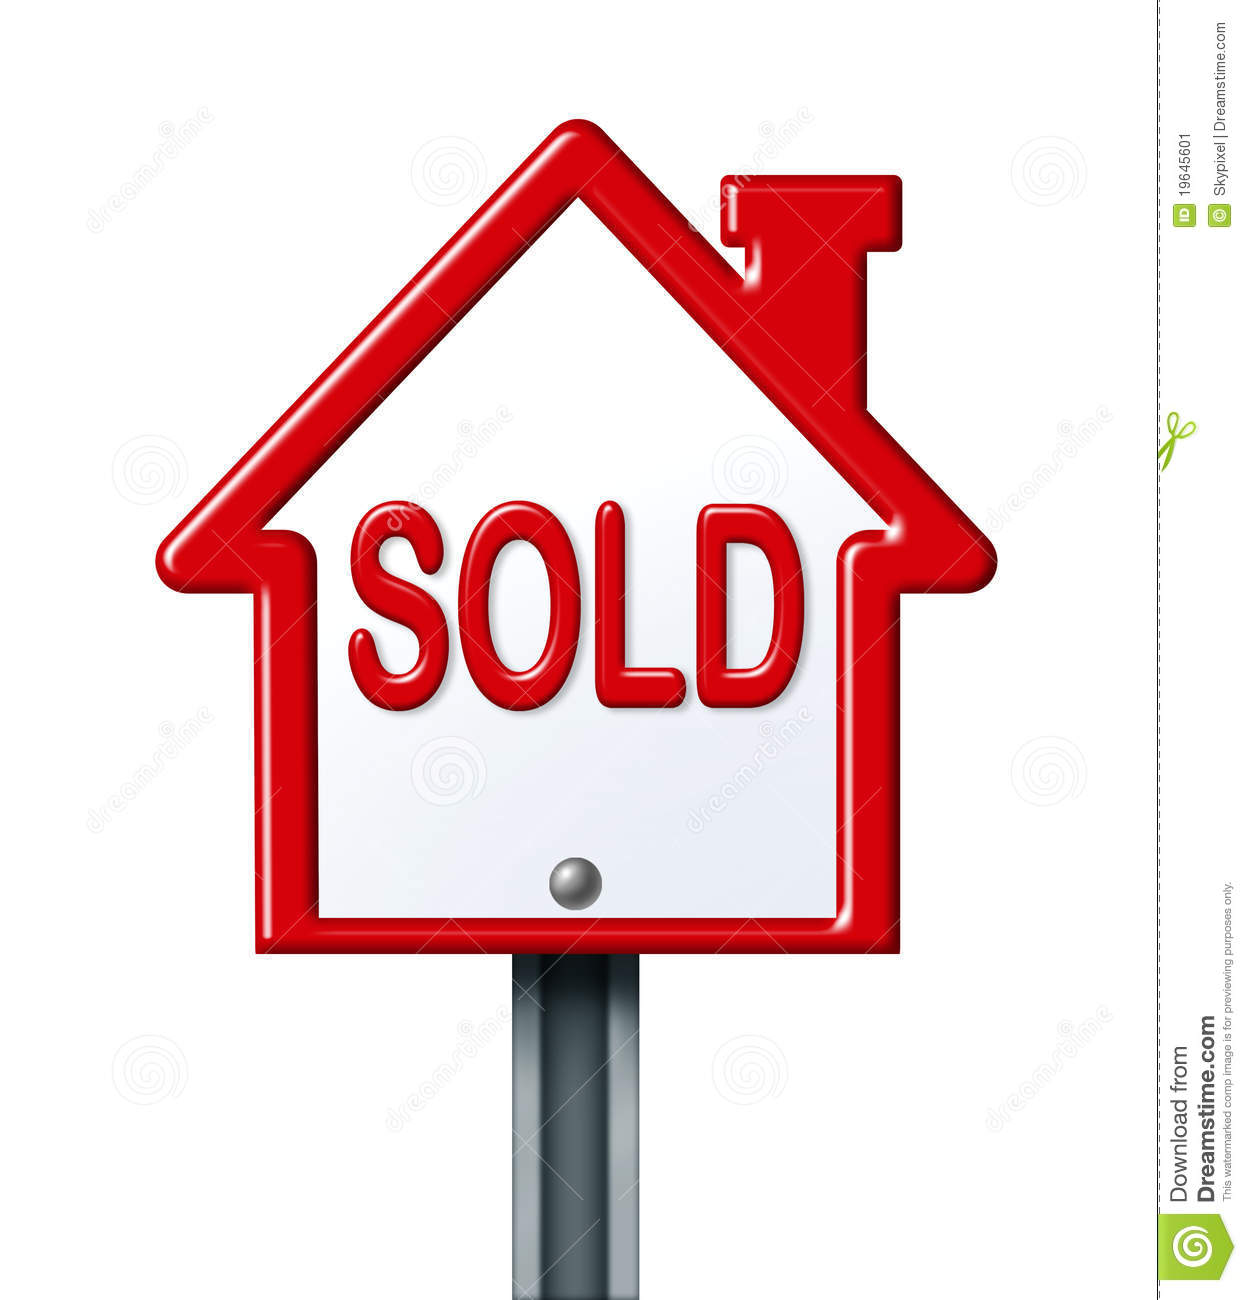 Real estate symbol for a sold home or residential house on a white ...